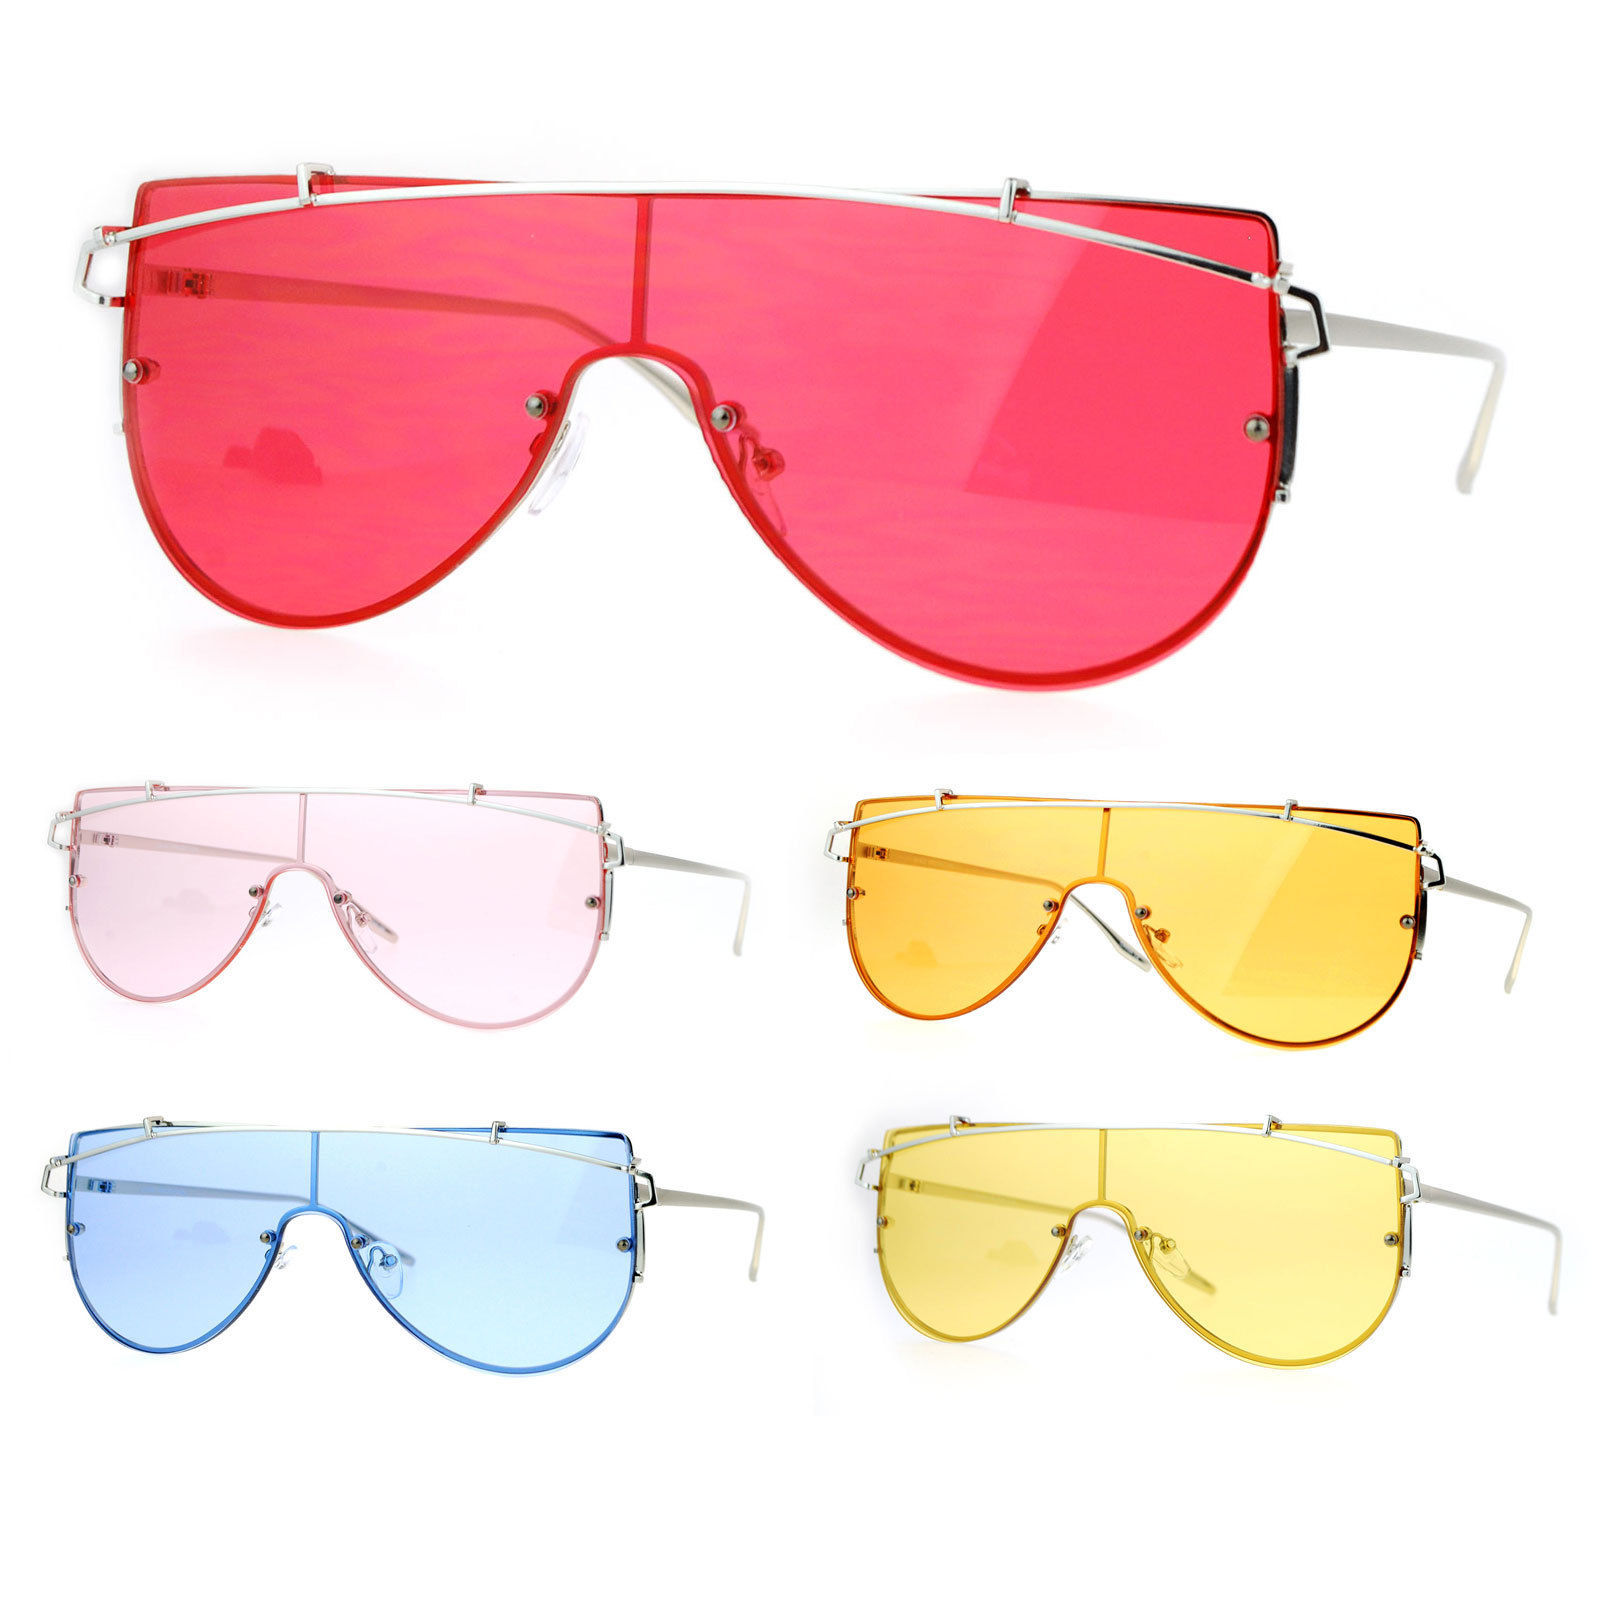 3d0e7c5a2c7d7 SA106 80s Disco Bright Color Lens Rimless and 50 similar items